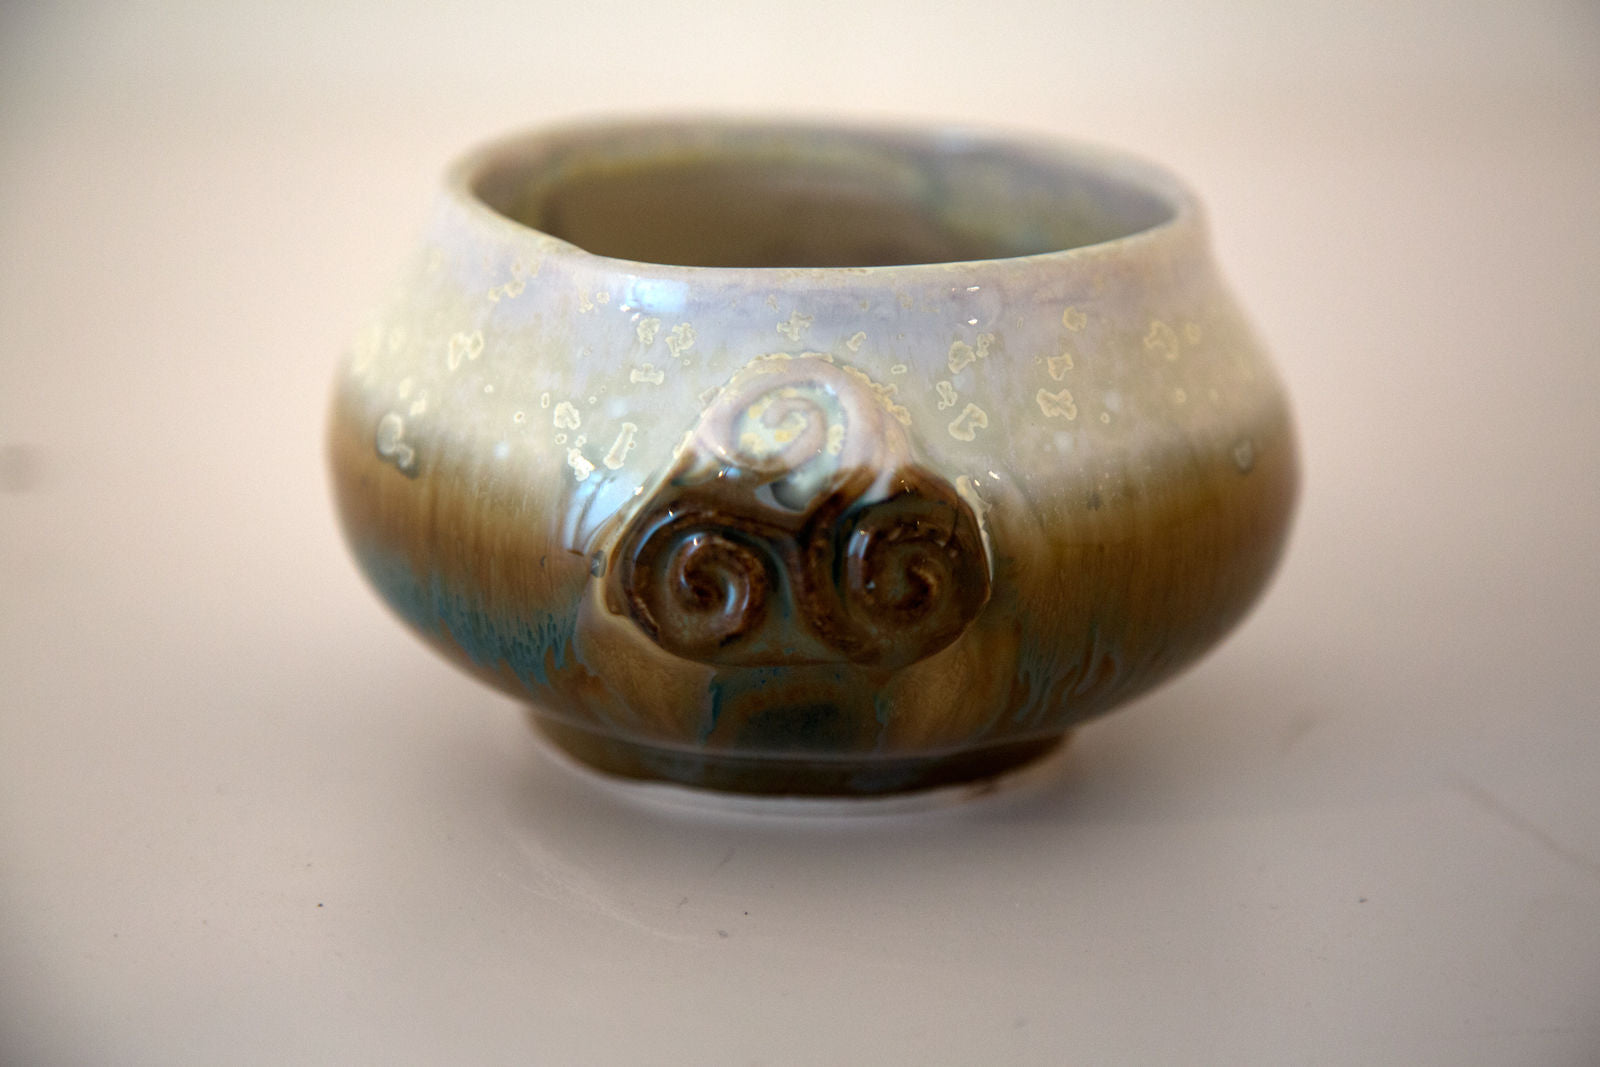 Handmade Ceramic Soup Bowl by Busy Bee Ceramics